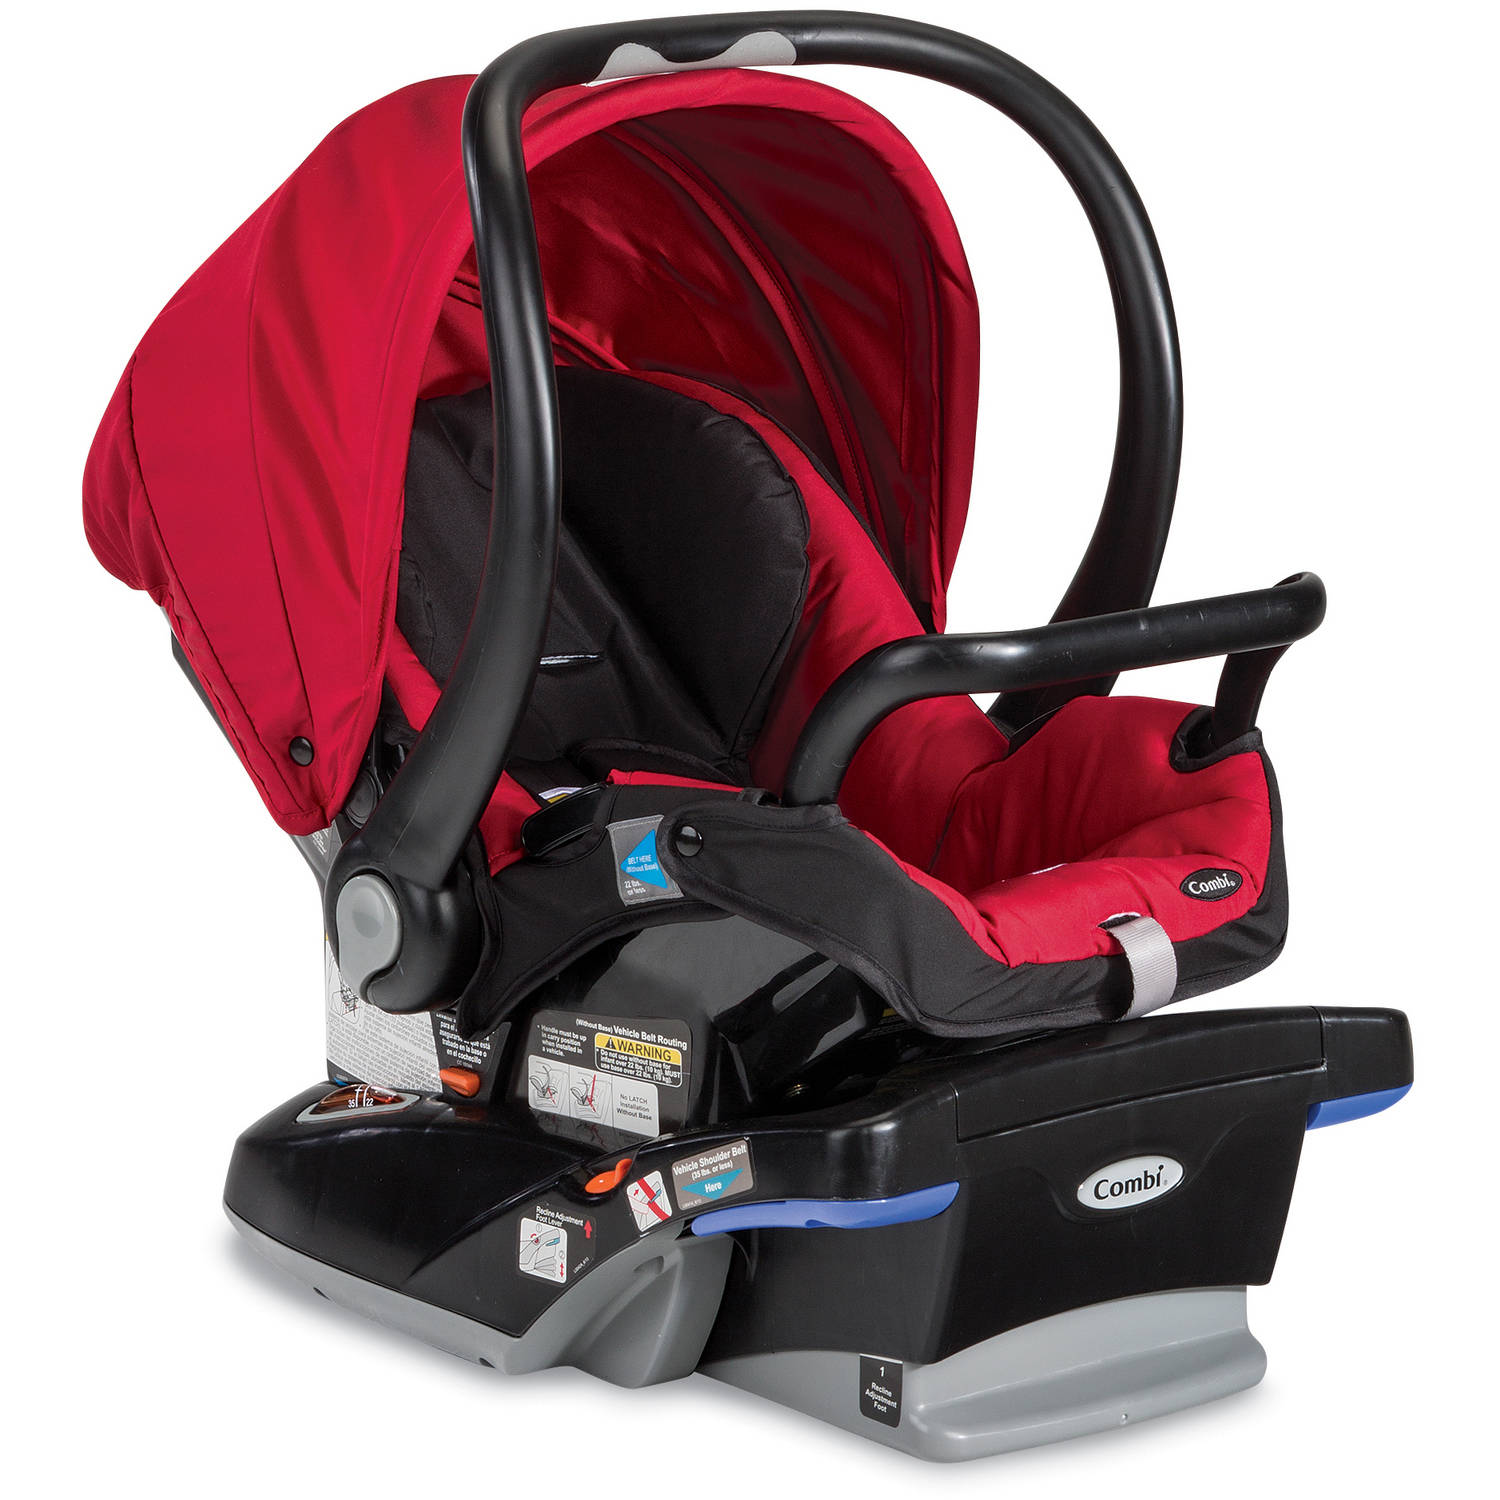 Combi Shuttle Infant Car Seat, Choose Your Color